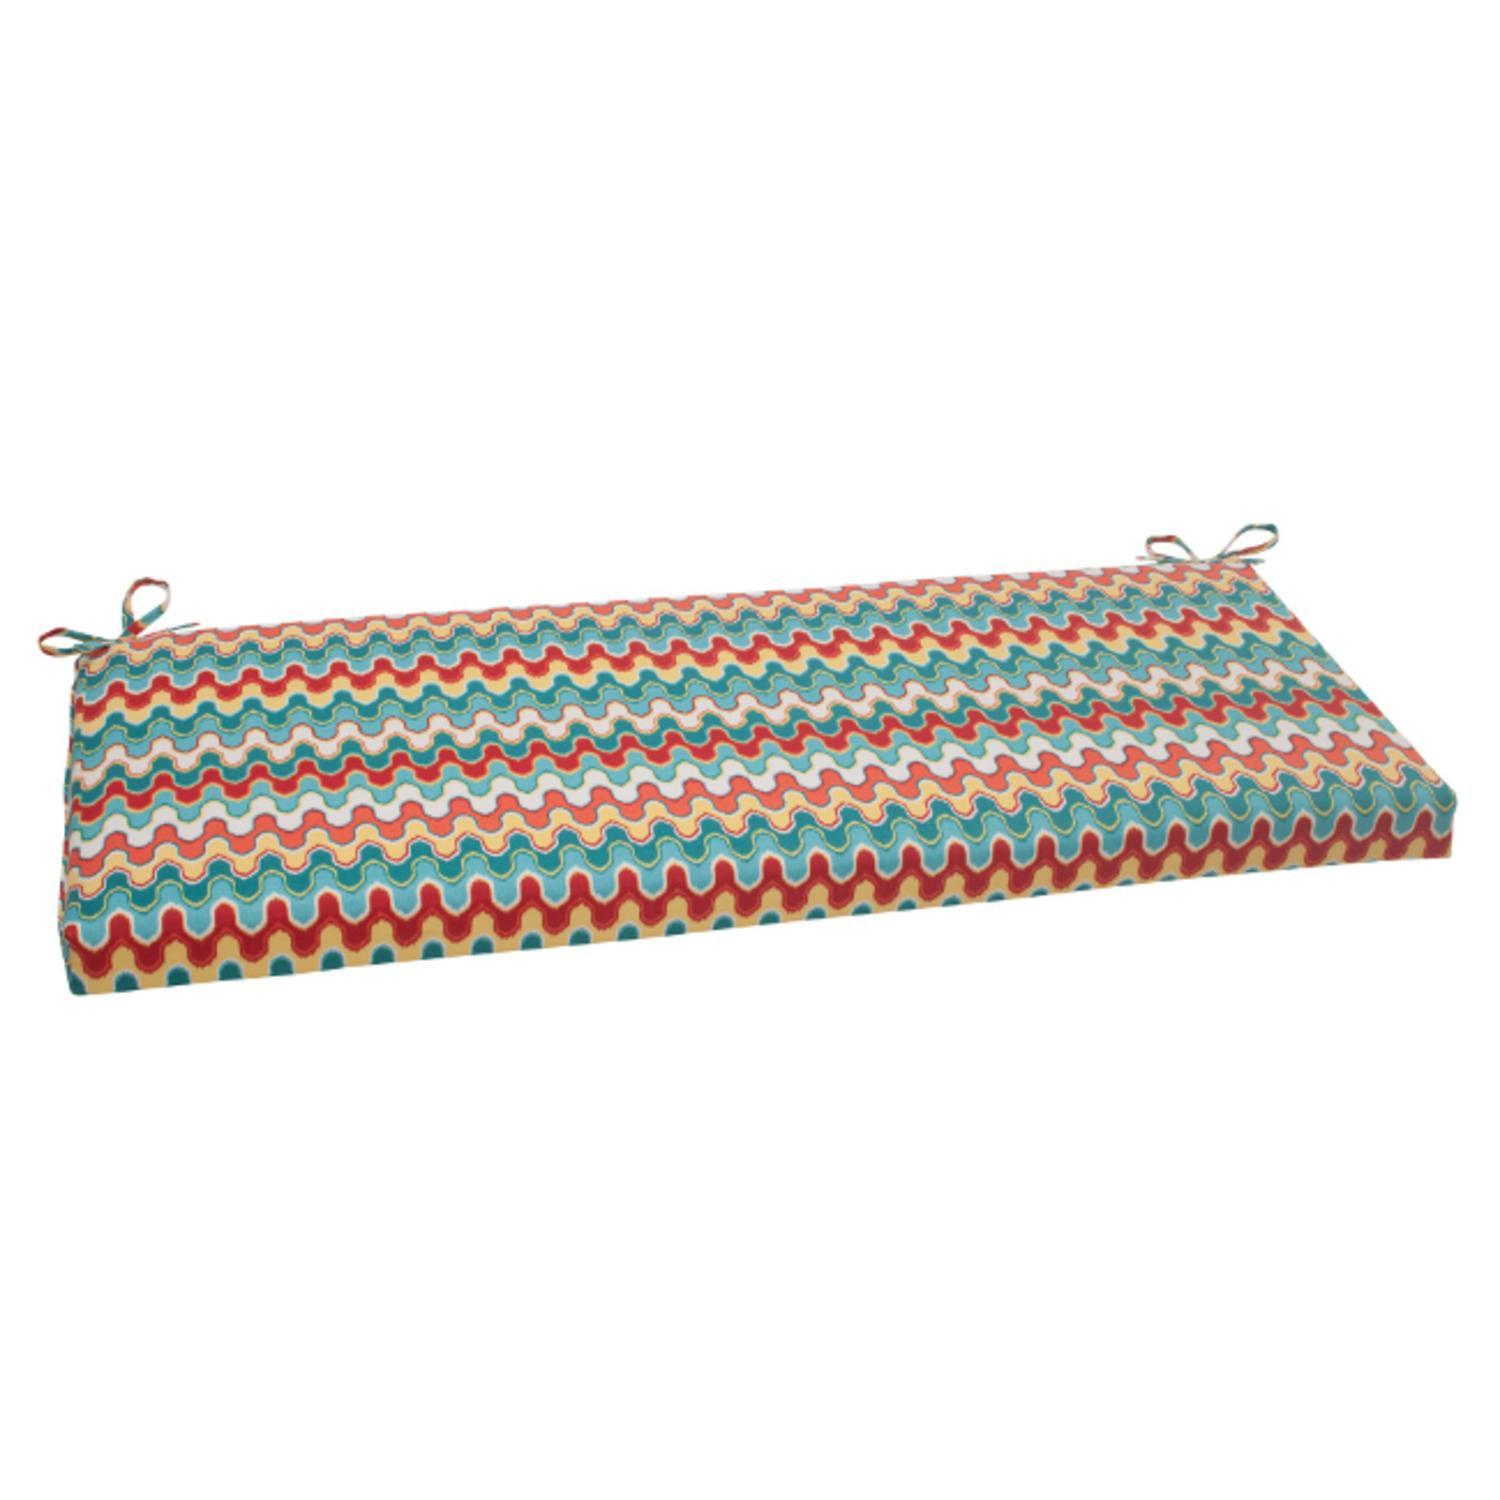 "45"" Moroccan Red & Turquoise Outdoor Patio Bench Cushion"